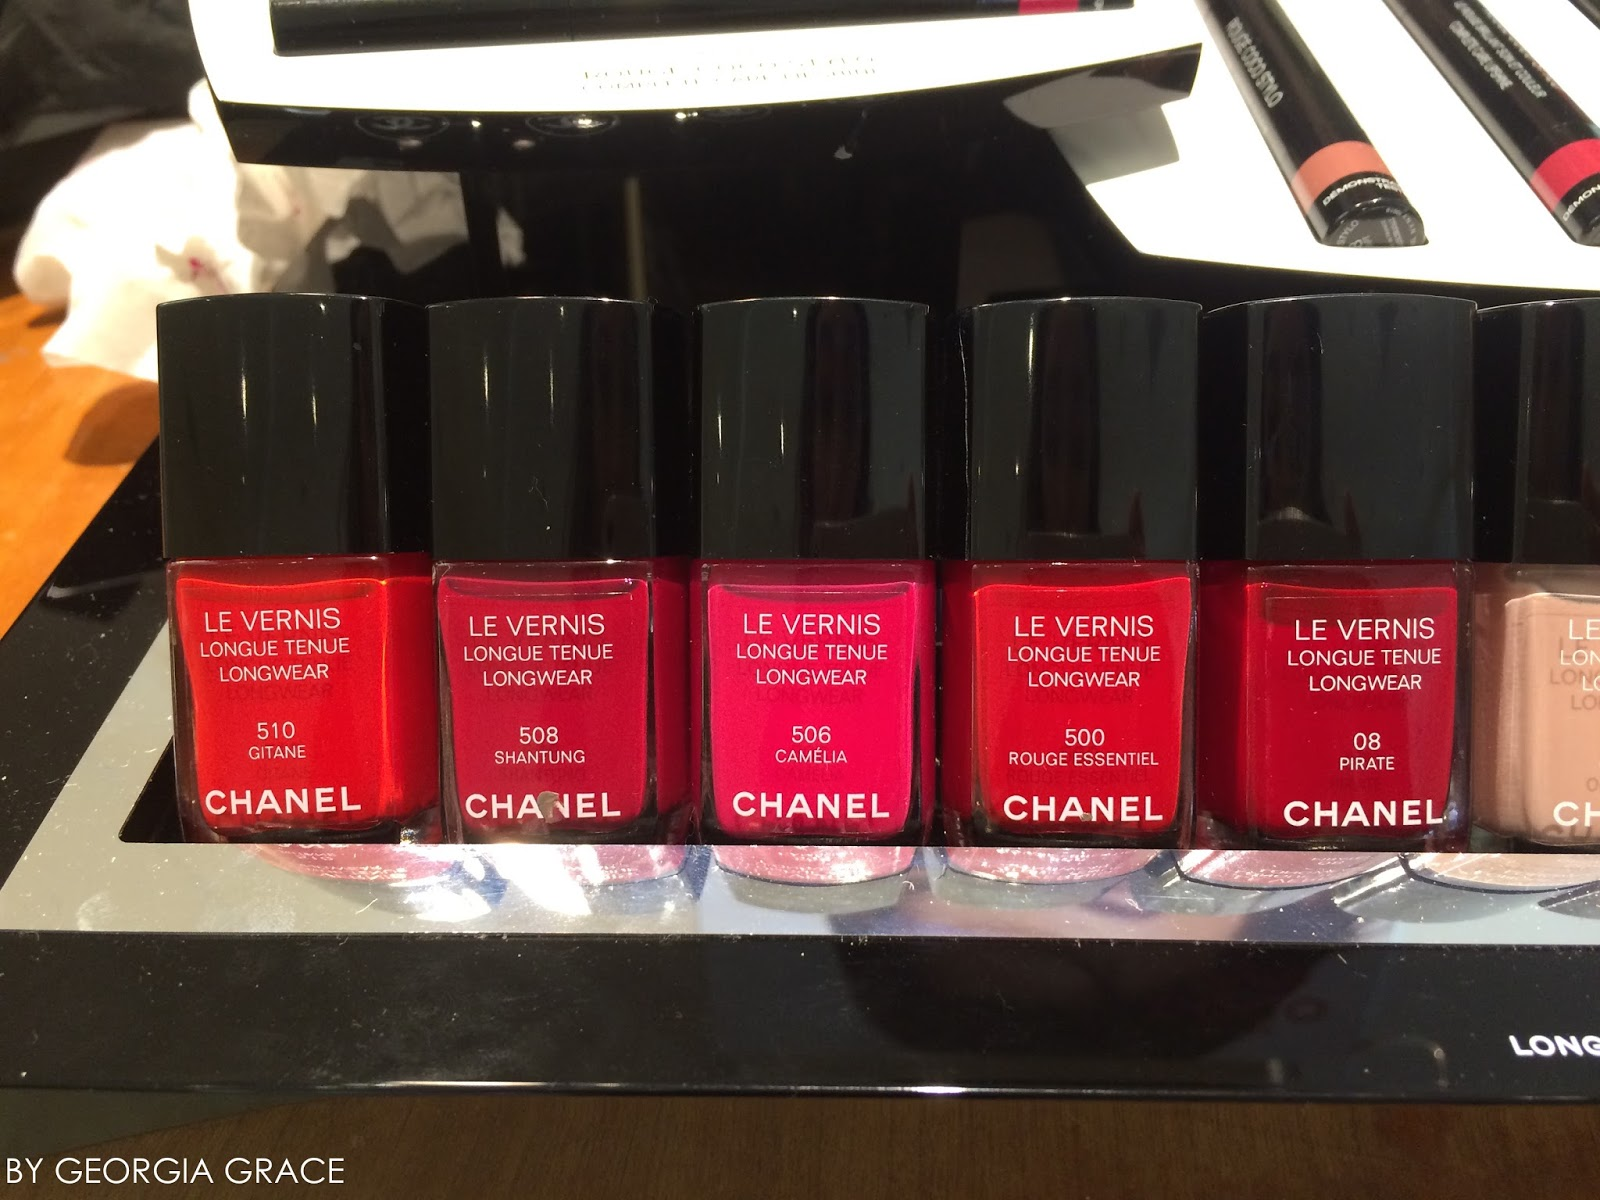 4694b85b7cd chanel new le vernis longwear nail polish swatches review gitane shantung  camelia rouge essentiel pirate